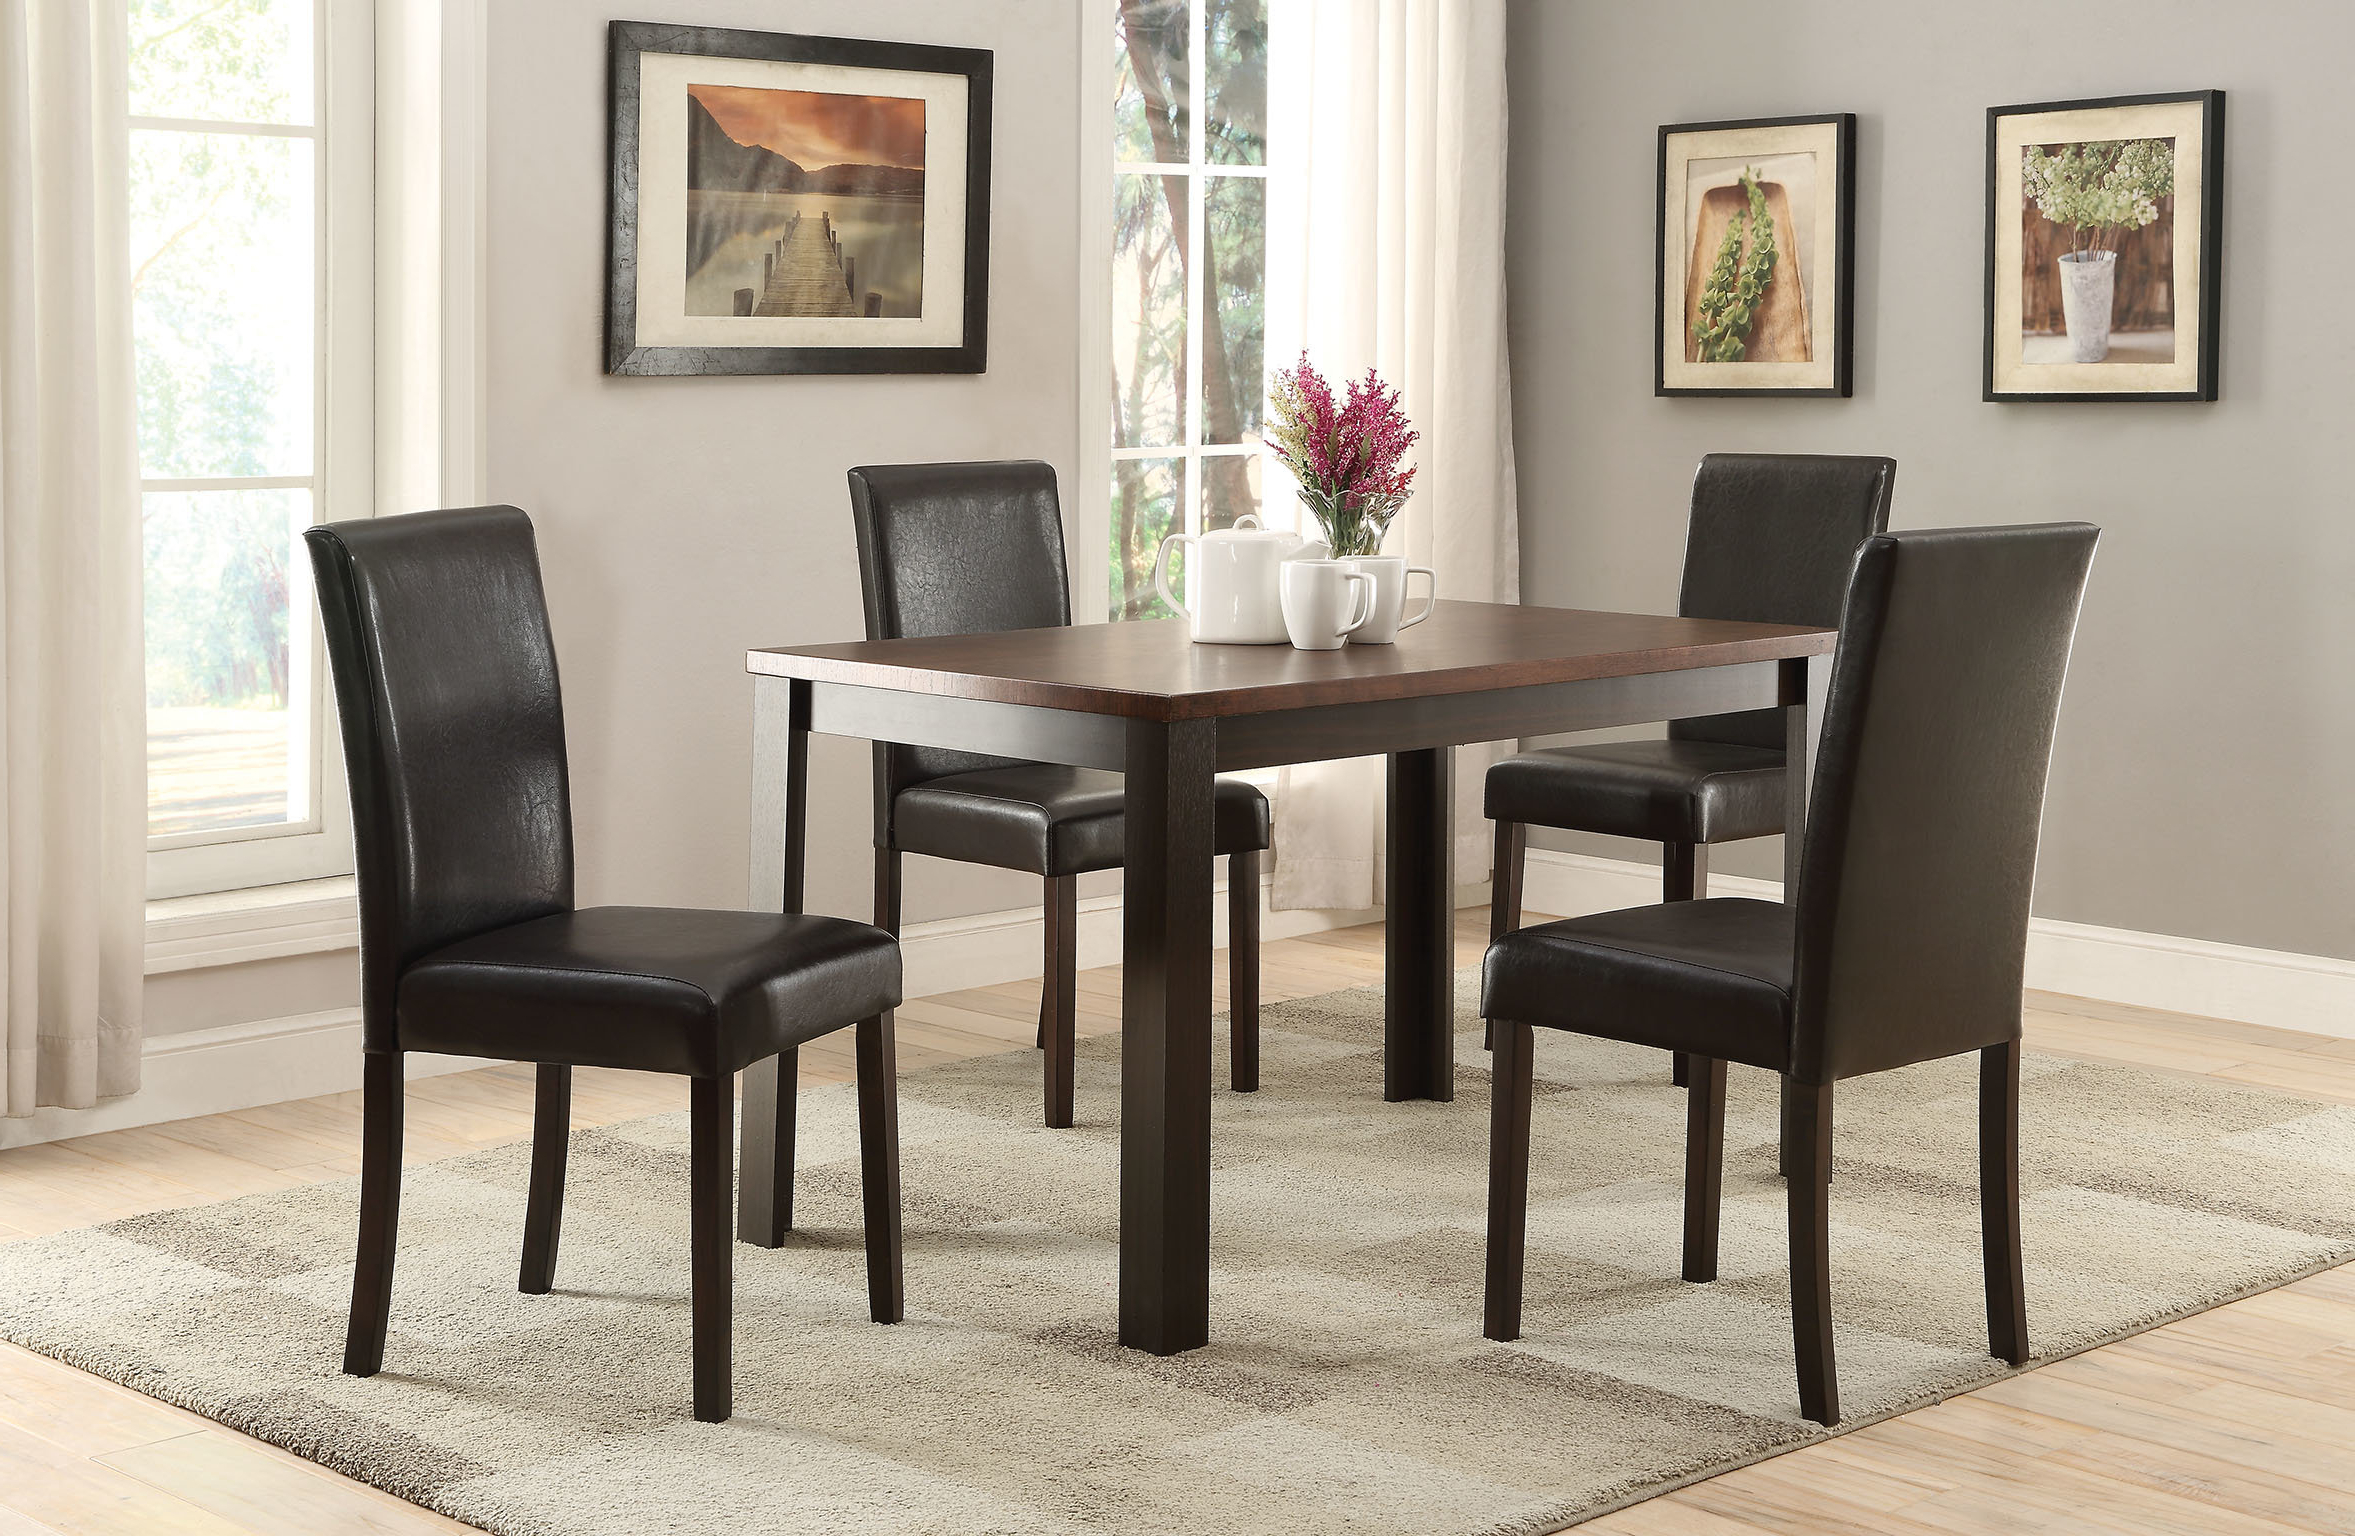 Elsaid 5 Piece Dining Set Regarding Latest Pattonsburg 5 Piece Dining Sets (View 10 of 20)